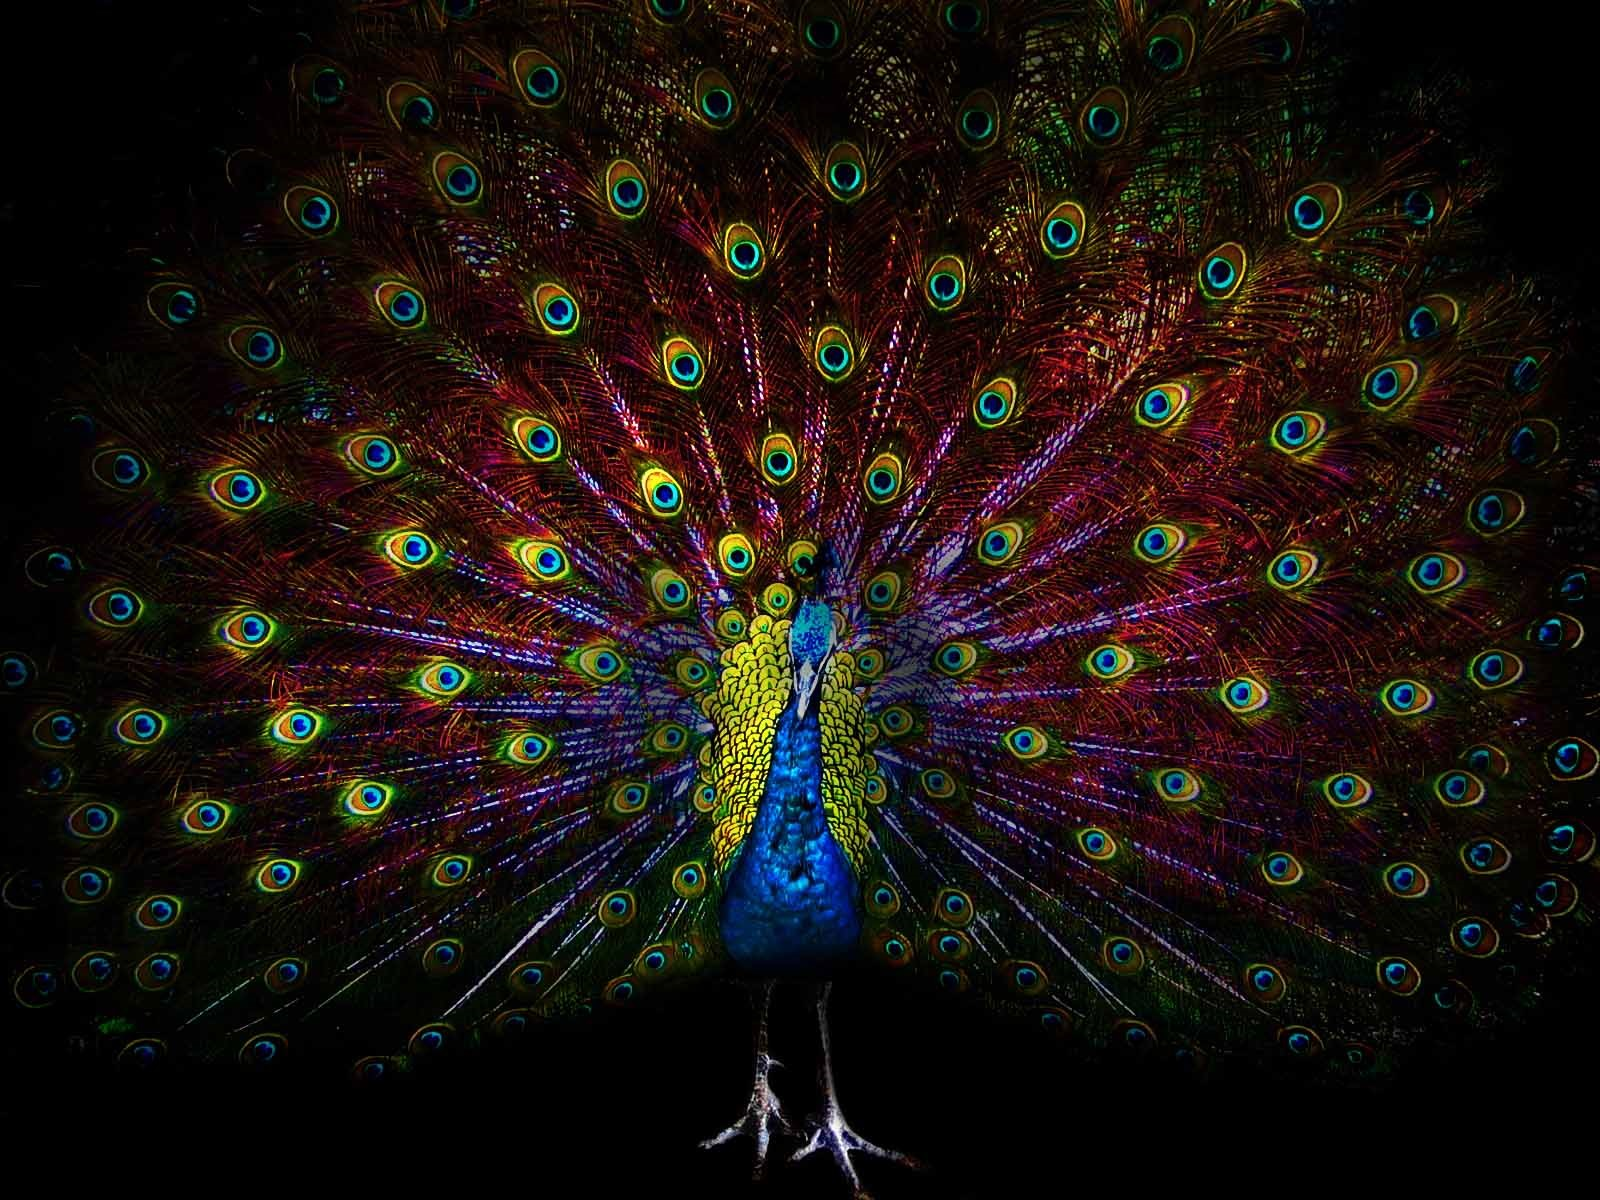 Wallpaper beautiful peacock tail feathers black background 1920x1200 hd picture image - Beautiful peacock feather ...